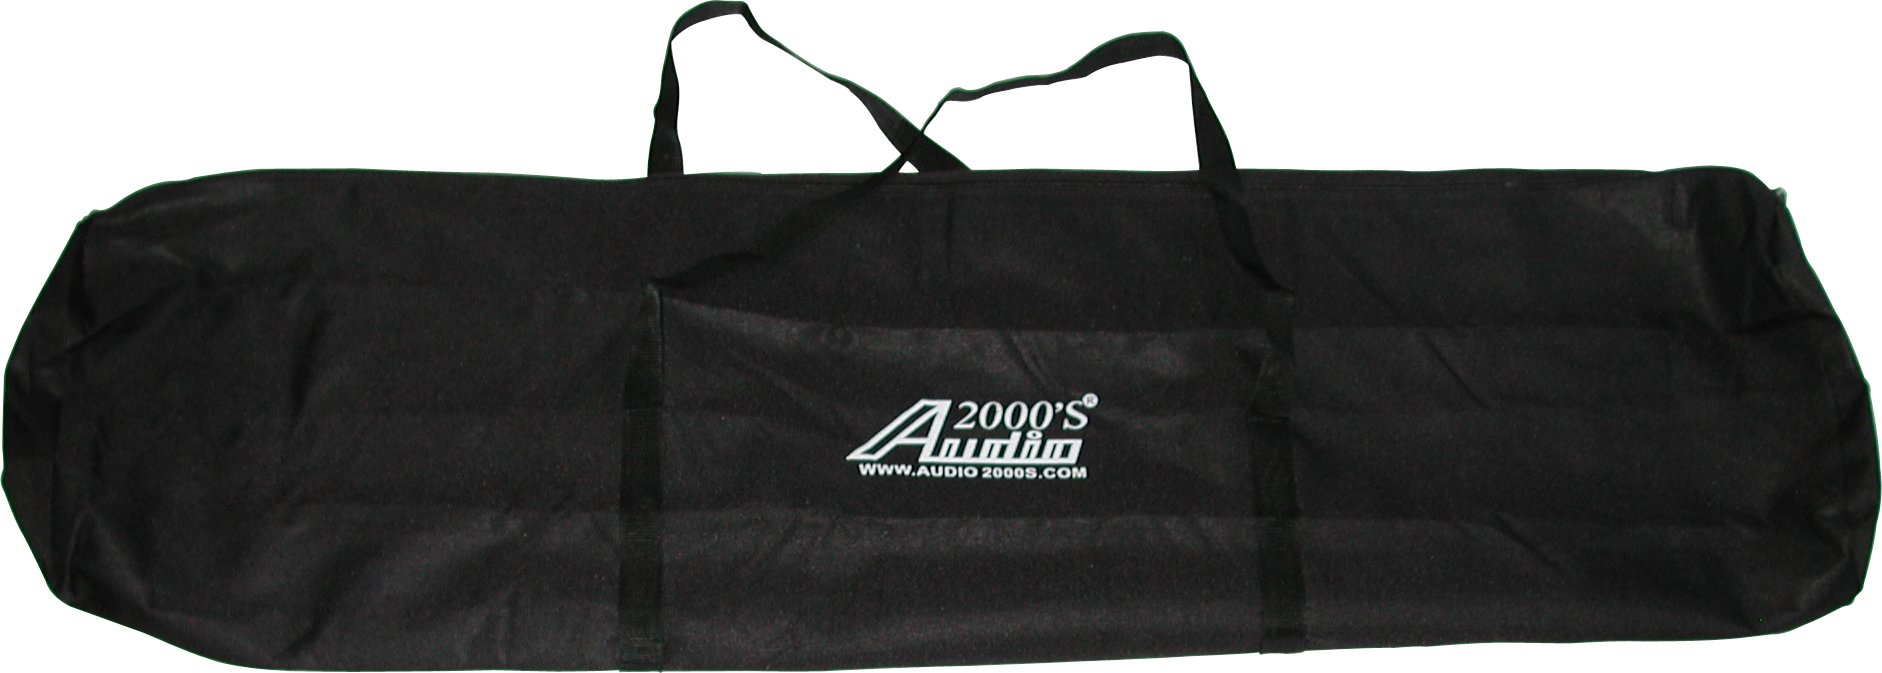 Audio2000'S ACC4395-99 Dual-Pack Speaker Stand Canvas Carrying Bag with a Divider Flap